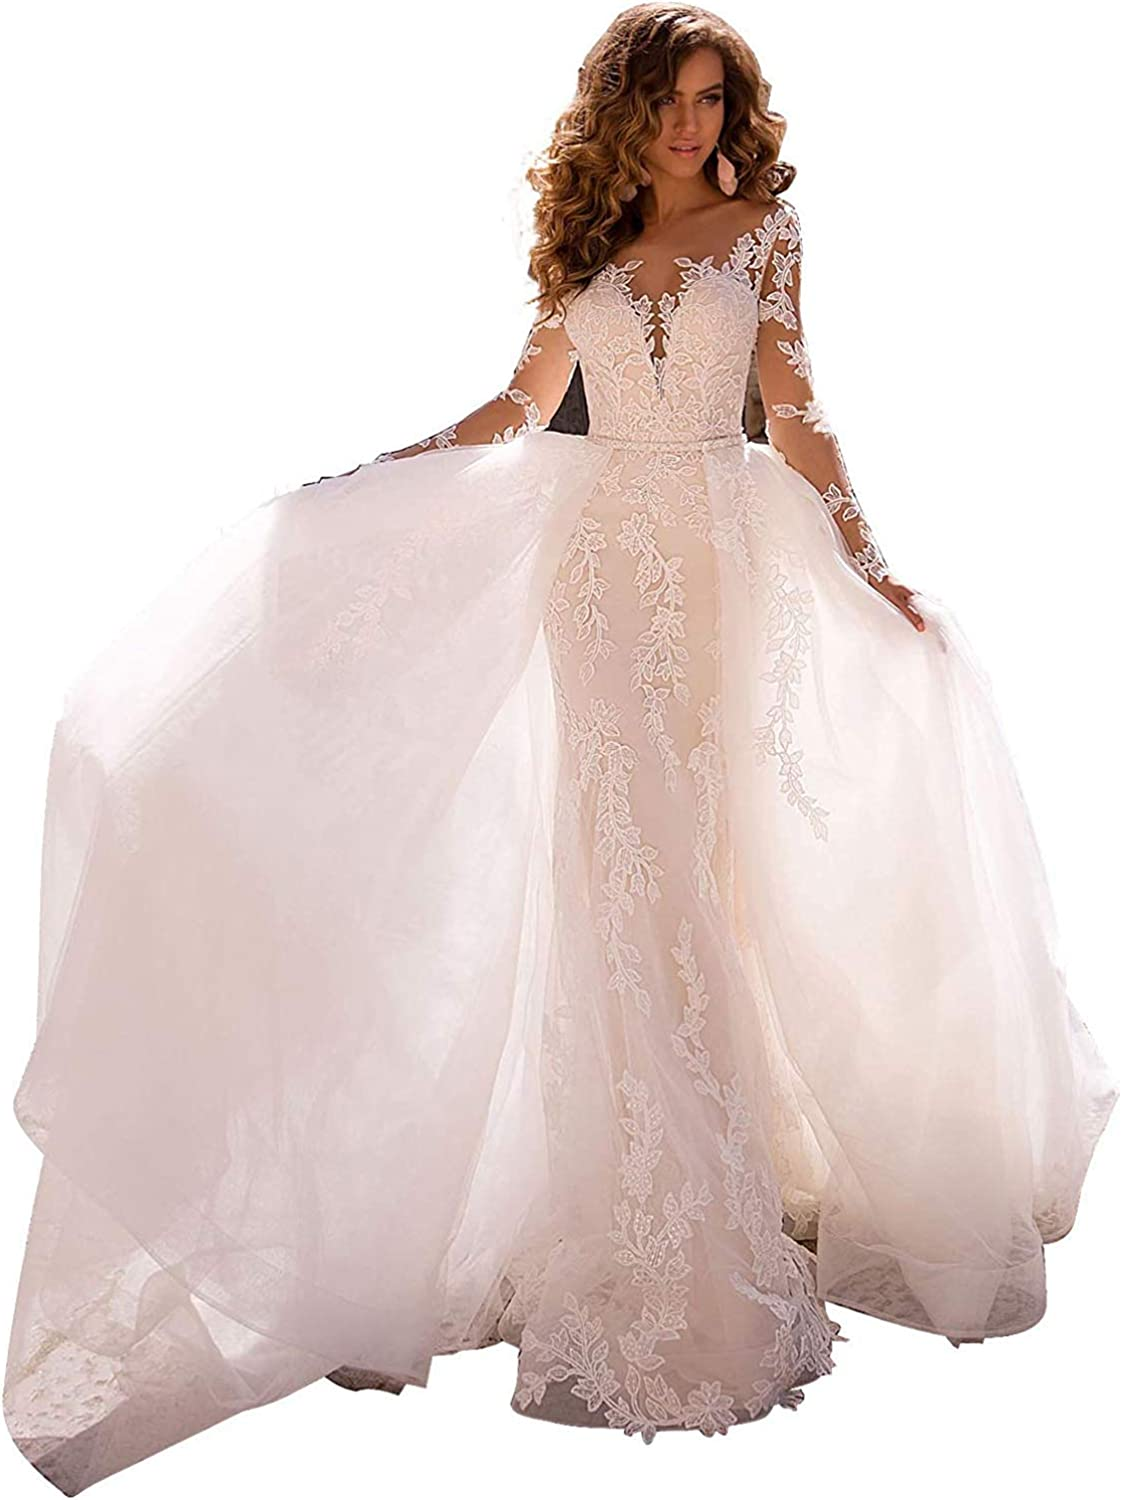 Melisa Long Sleeves Lace Mermaid Beach Wedding Dresses for Bride with Detachable Train Tulle Bridal Ball Gowns